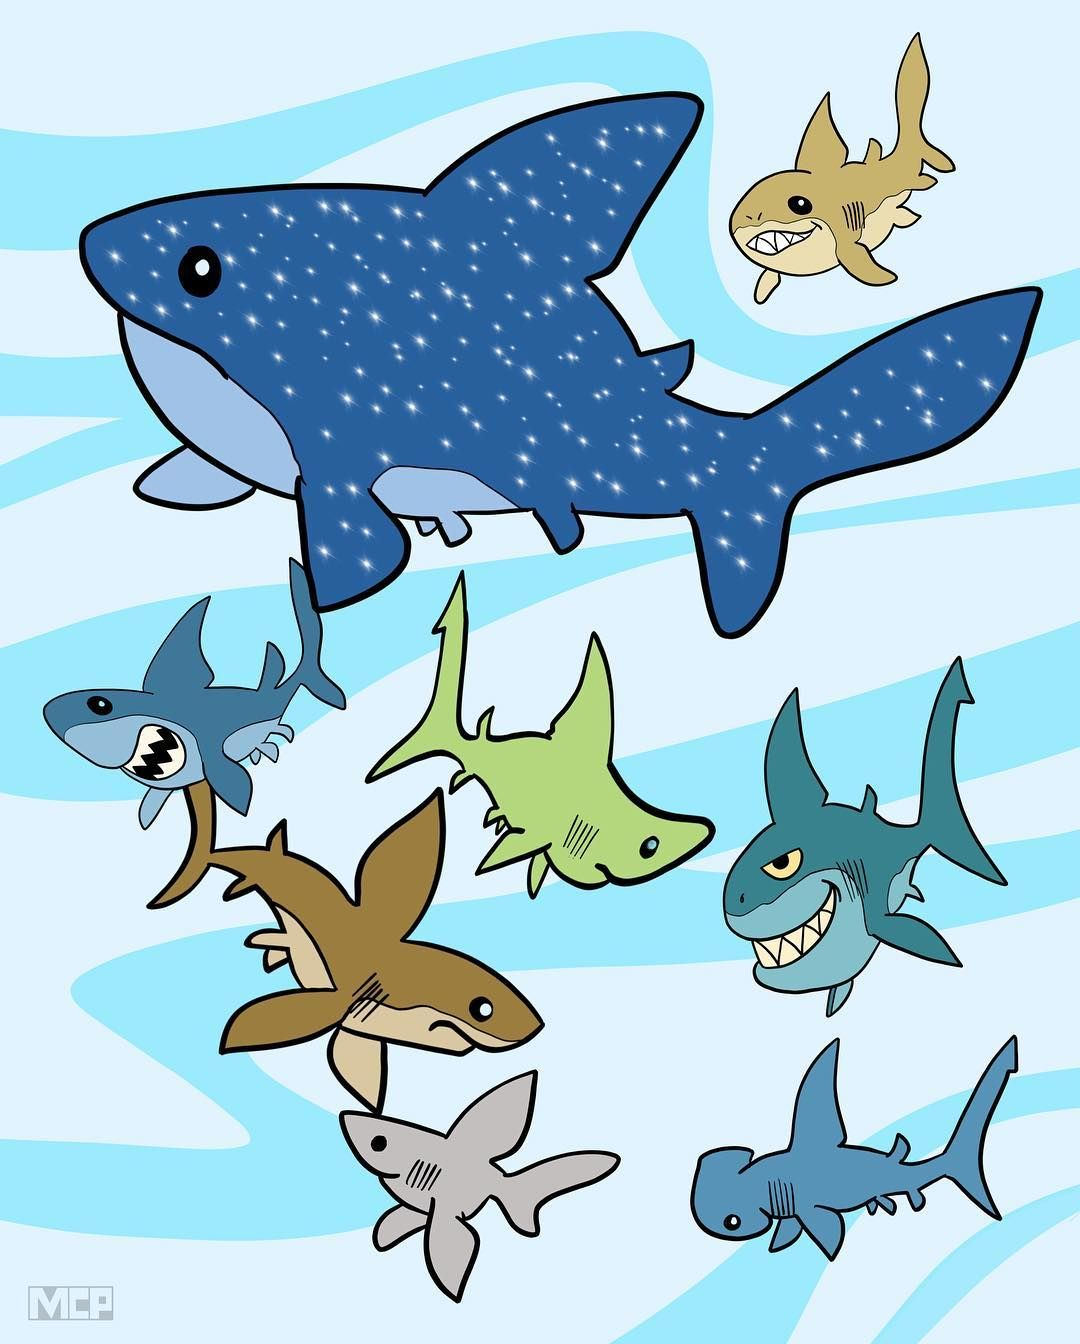 A Shiver of Sharks shark tiburon requin haifisch sharks